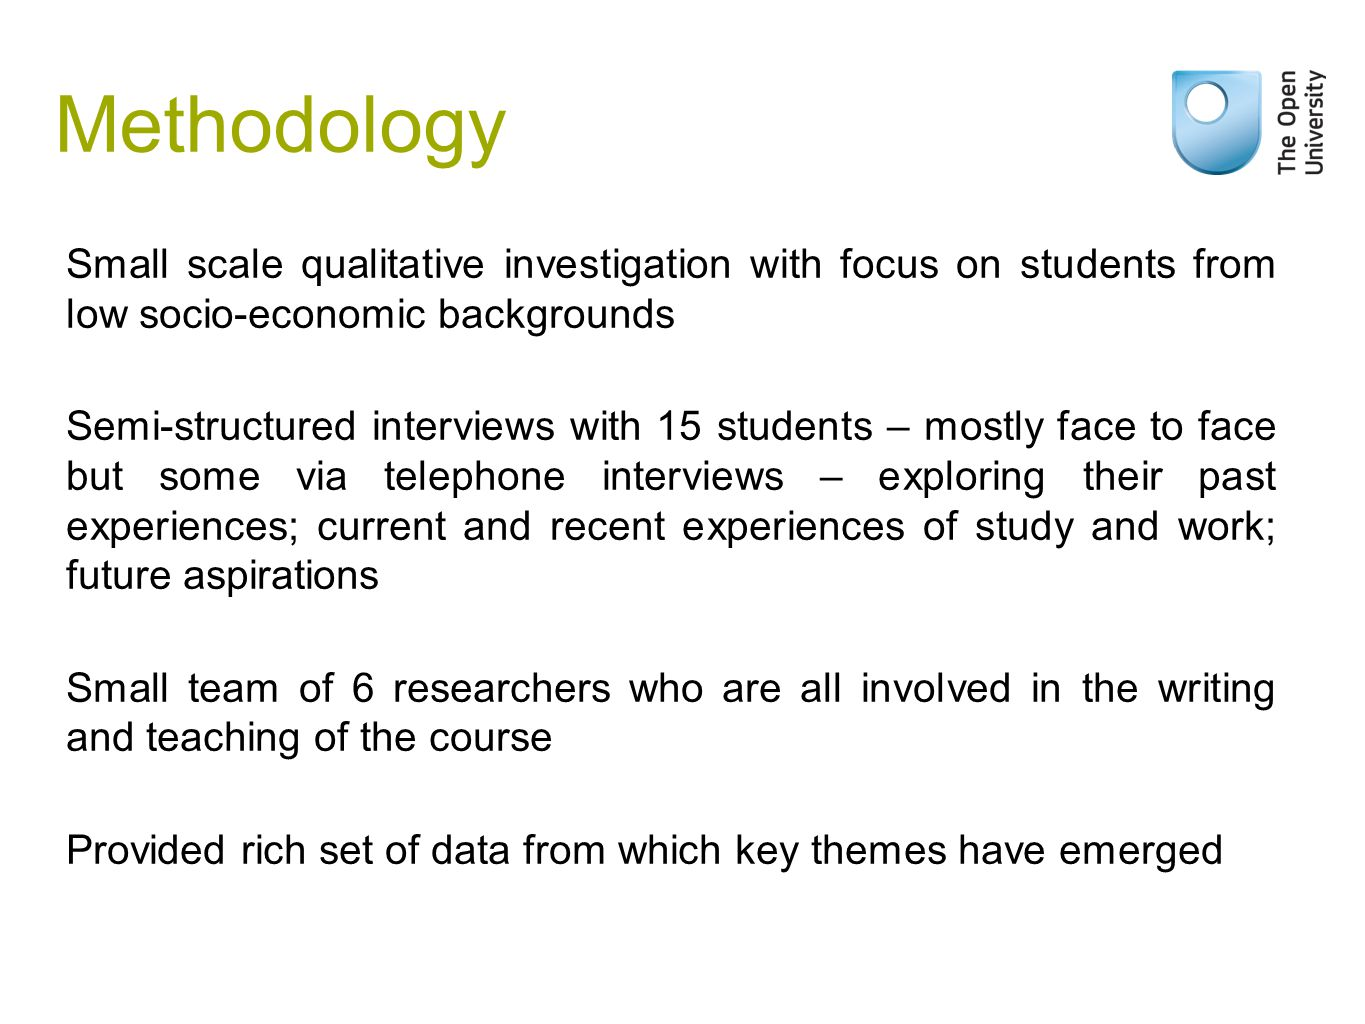 Methodology Small scale qualitative investigation with focus on students from low socio-economic backgrounds Semi-structured interviews with 15 students – mostly face to face but some via telephone interviews – exploring their past experiences; current and recent experiences of study and work; future aspirations Small team of 6 researchers who are all involved in the writing and teaching of the course Provided rich set of data from which key themes have emerged